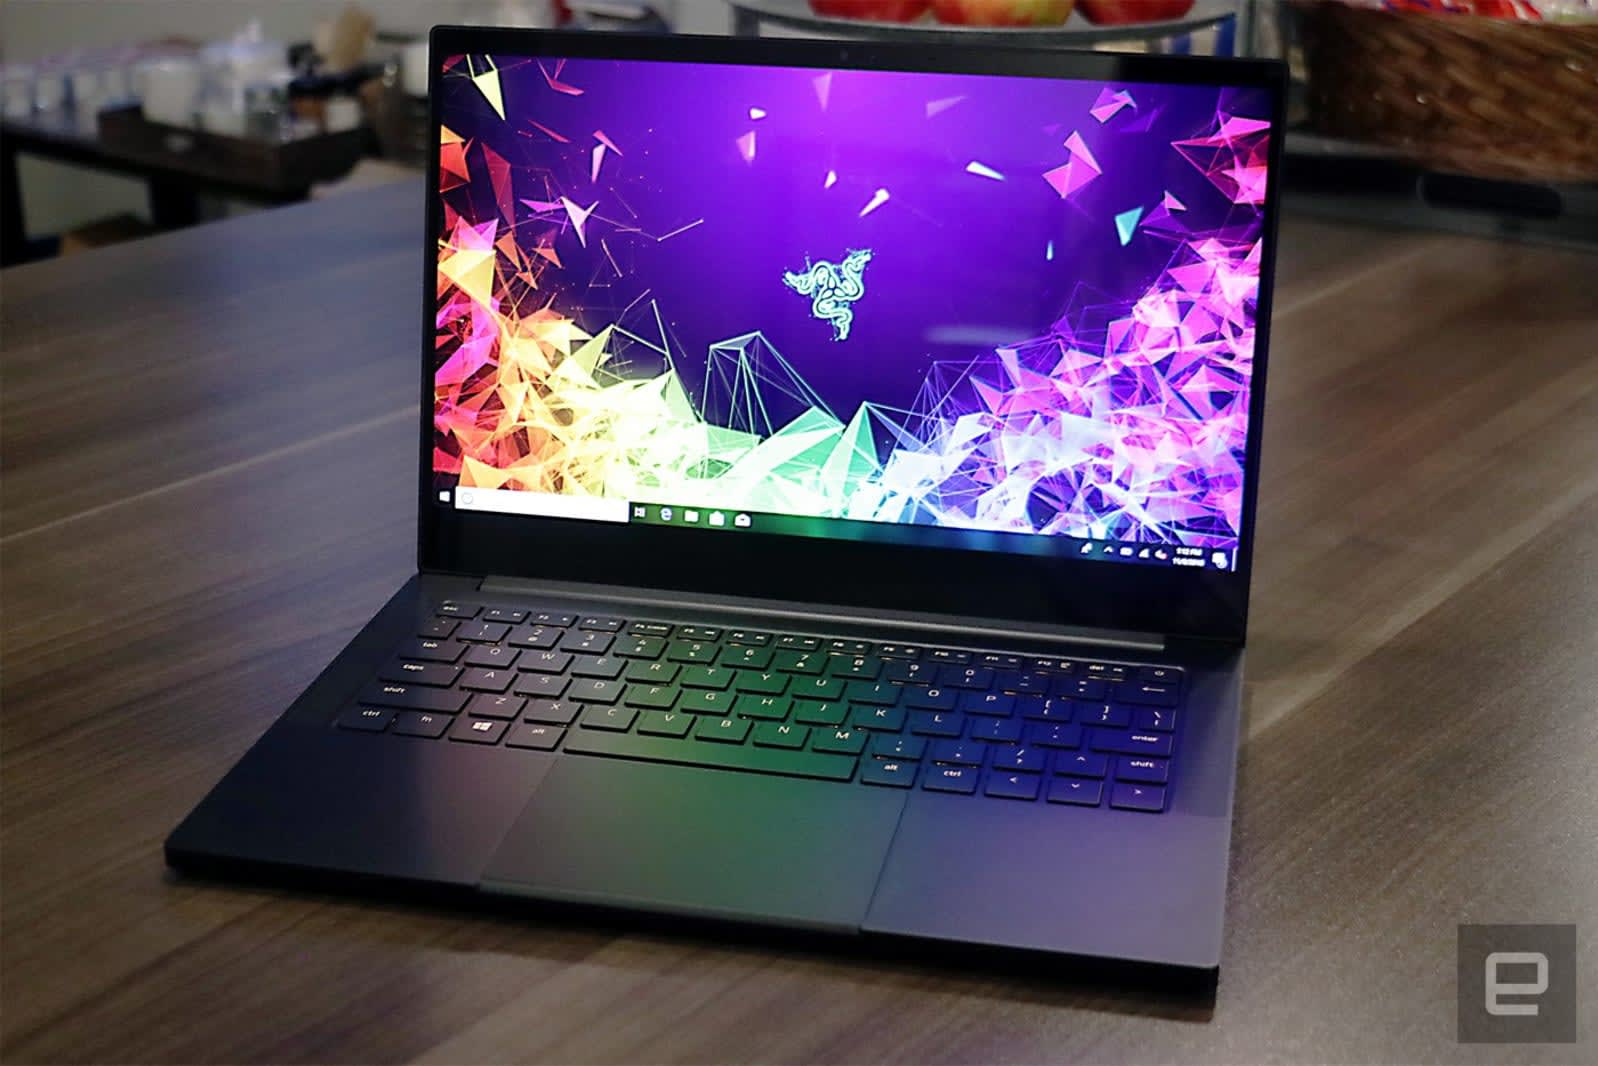 Razer's latest Blade Stealth laptop keeps it classy